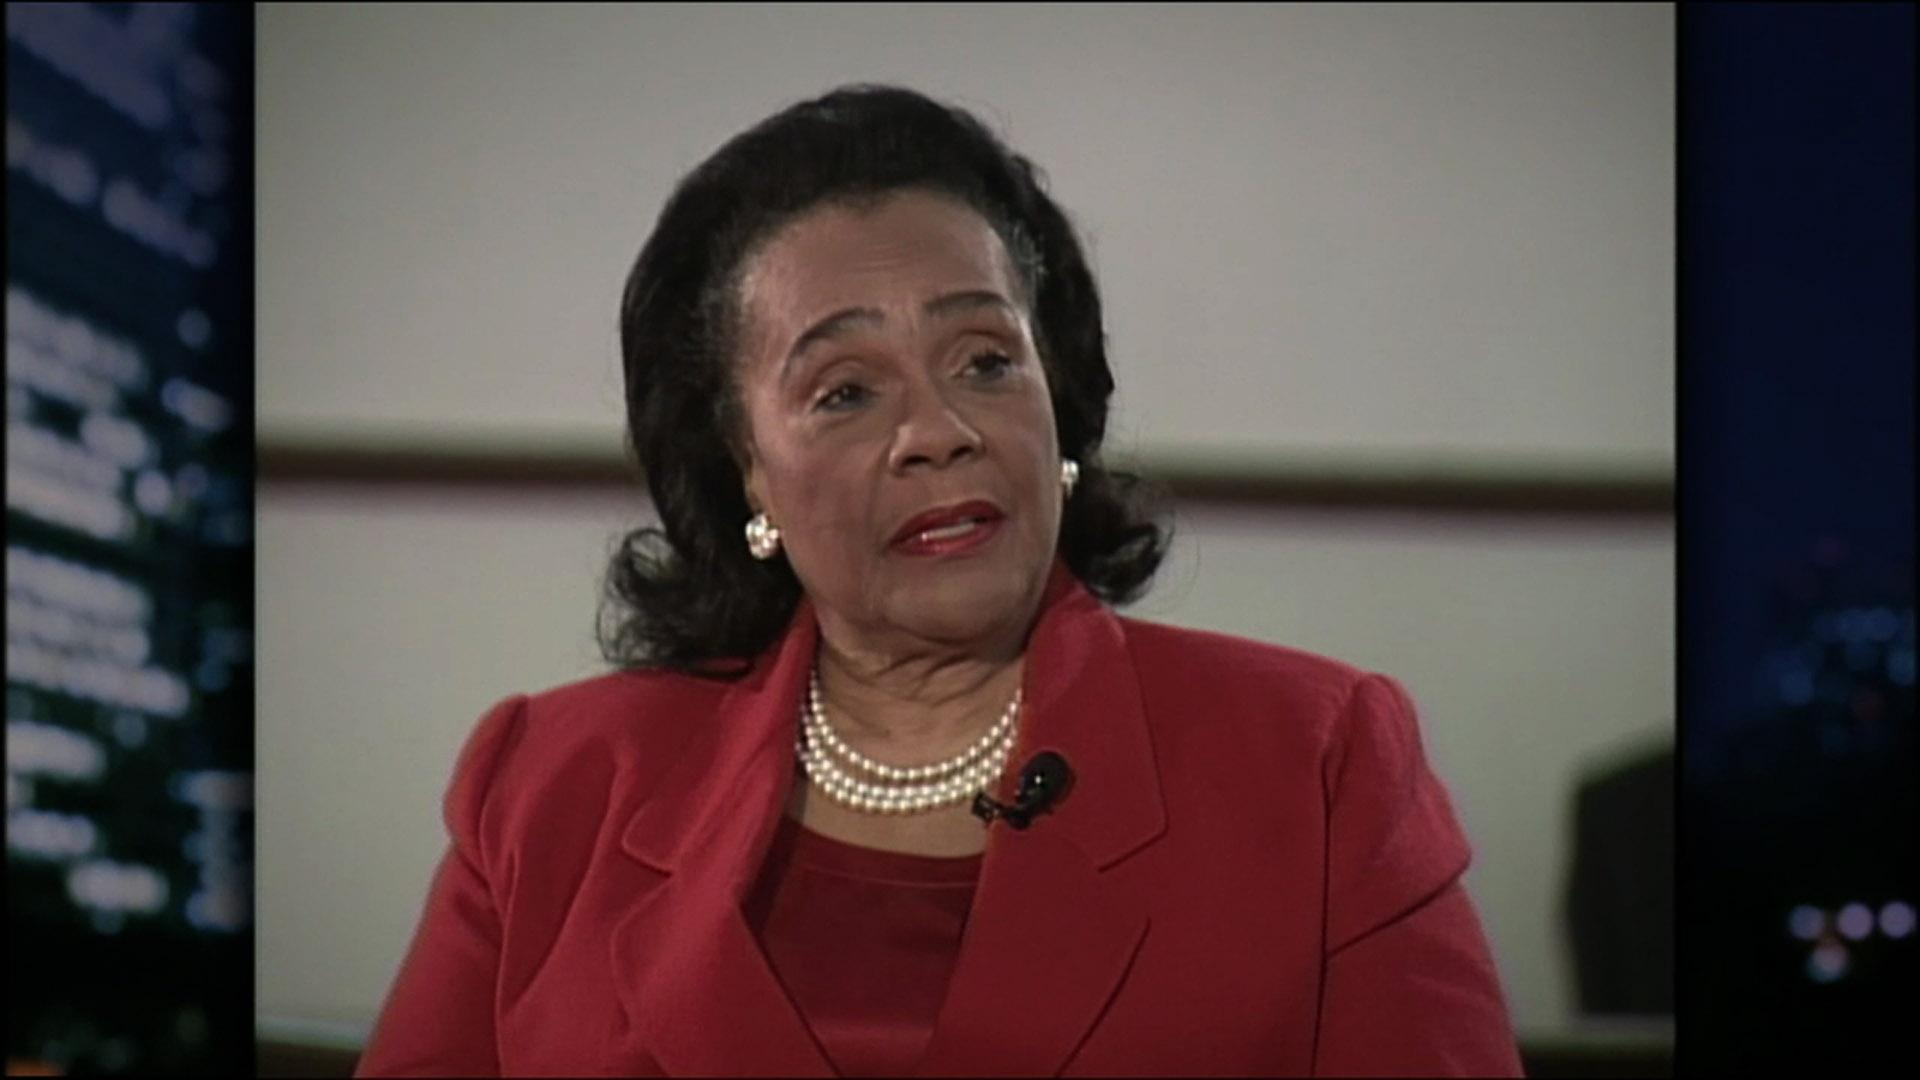 Civil rights activist Coretta Scott King image